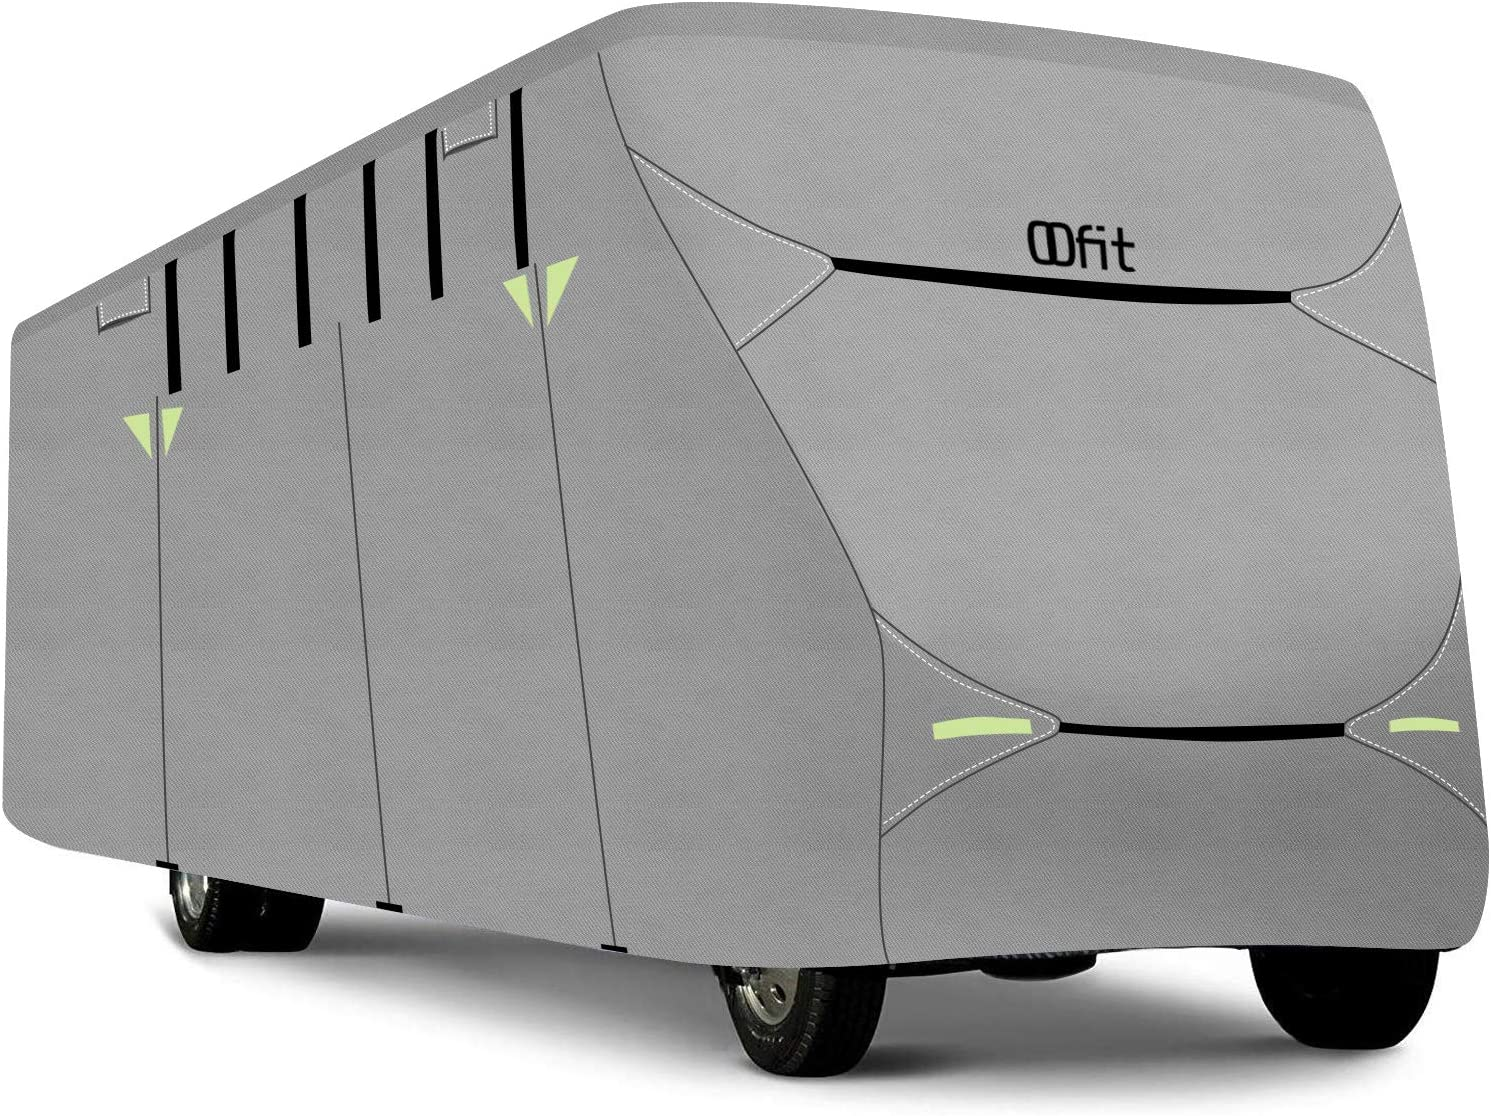 OOFIT Deluxe Class C RV Cover, Fits 29' - 32' RVs - Max Weather Protection with 4-Ply Poly Fabric Roof Motorhome Cover